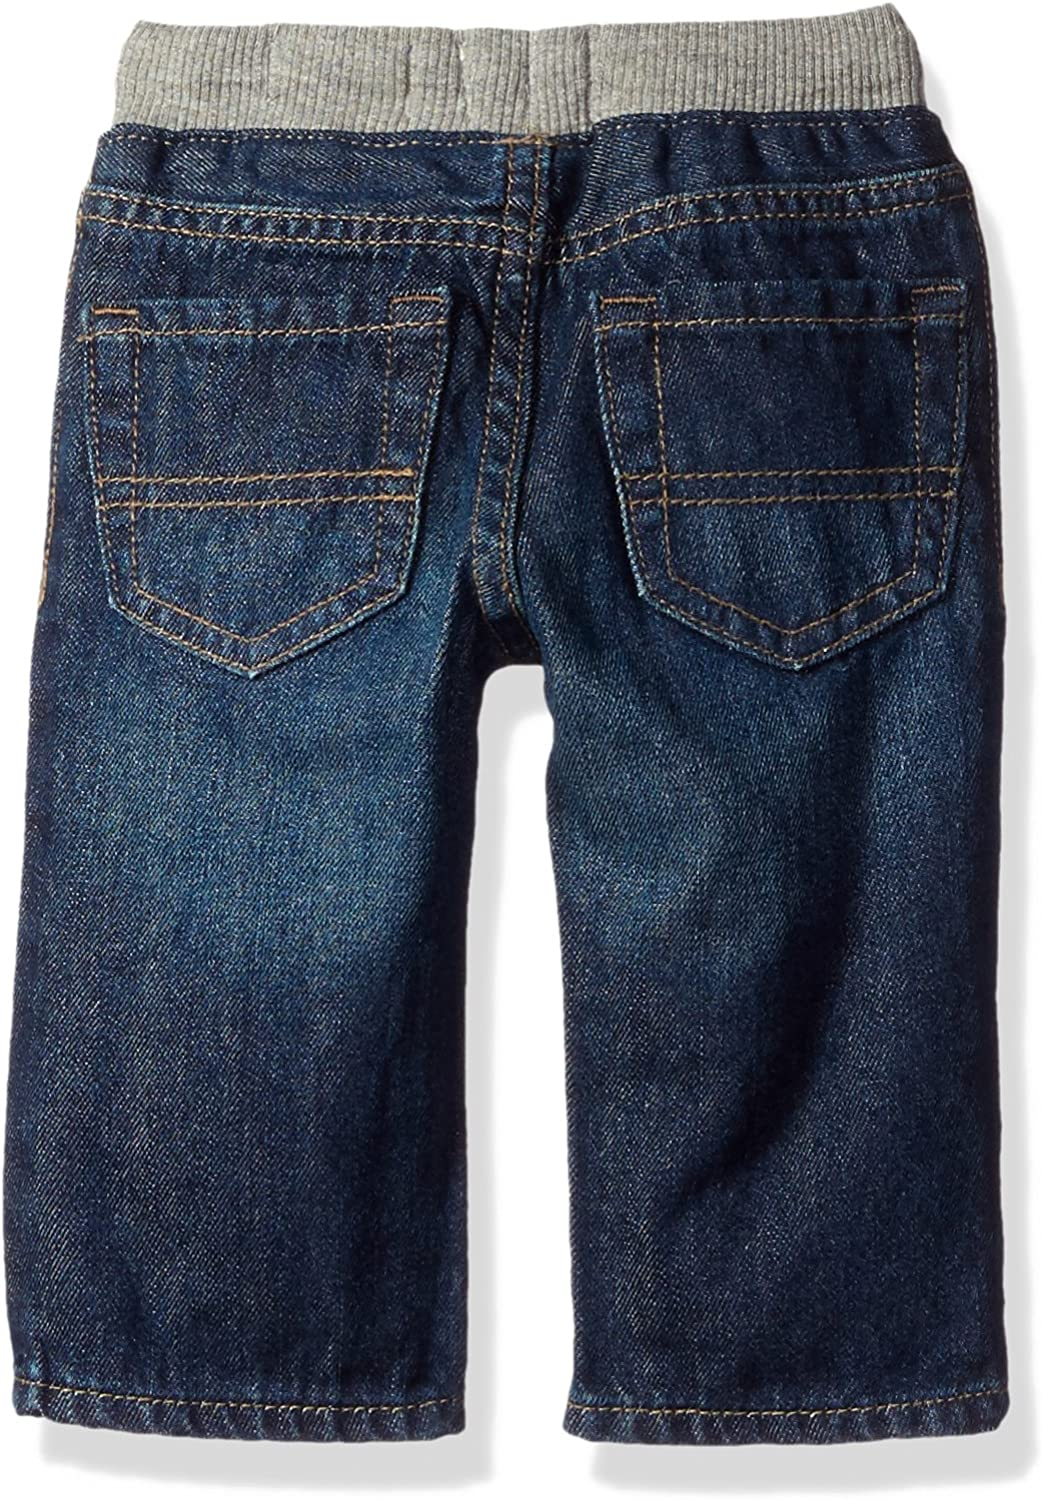 The Childrens Place Baby Boys Pull on Jeans